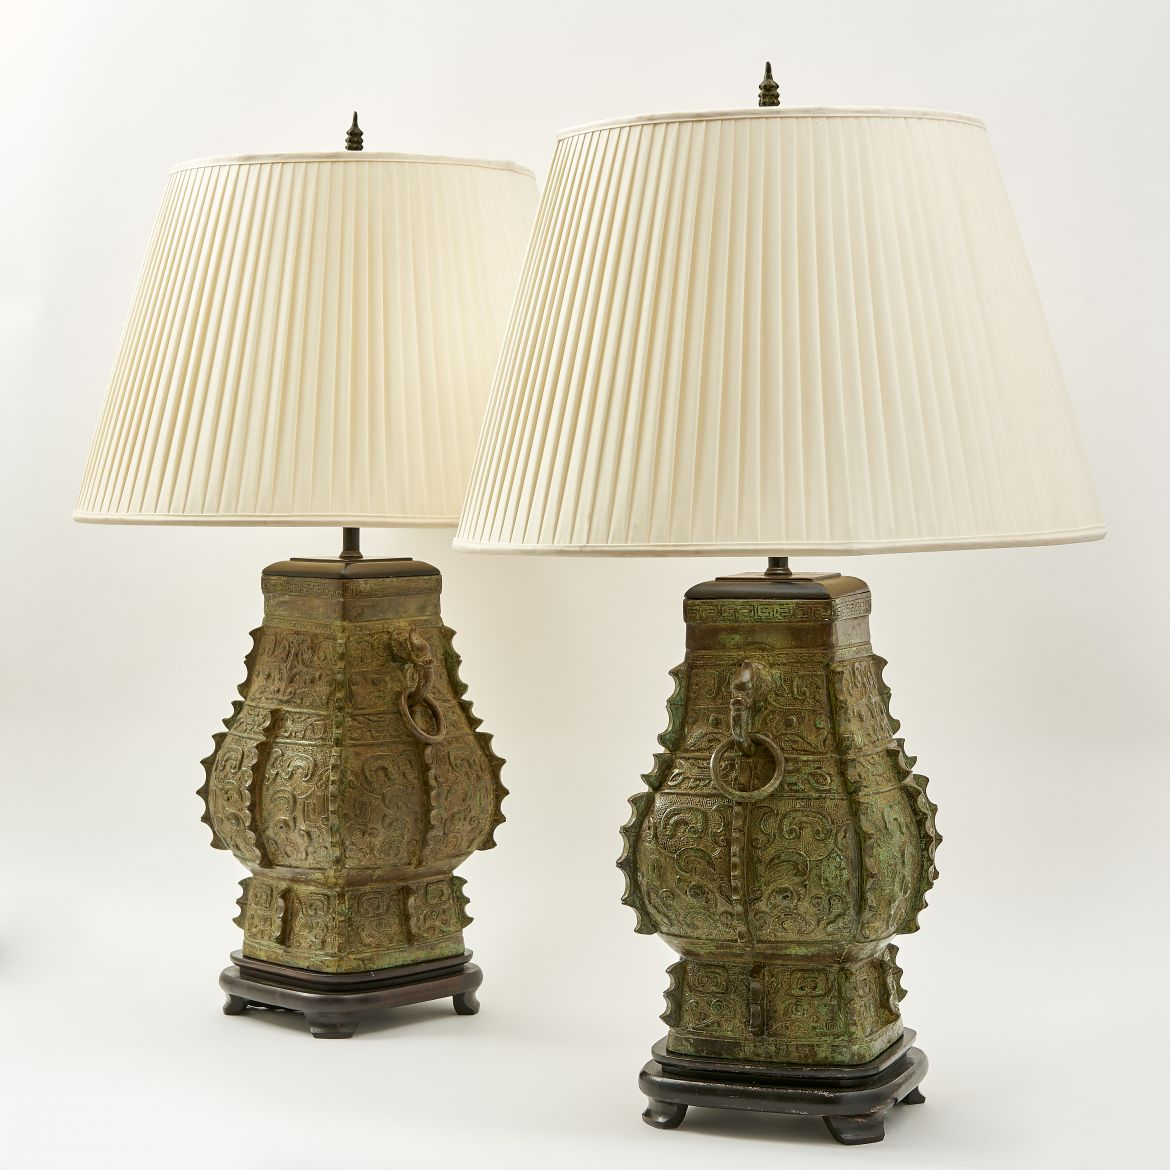 Bronze Lamps In Form Of Han Dynasty Vases